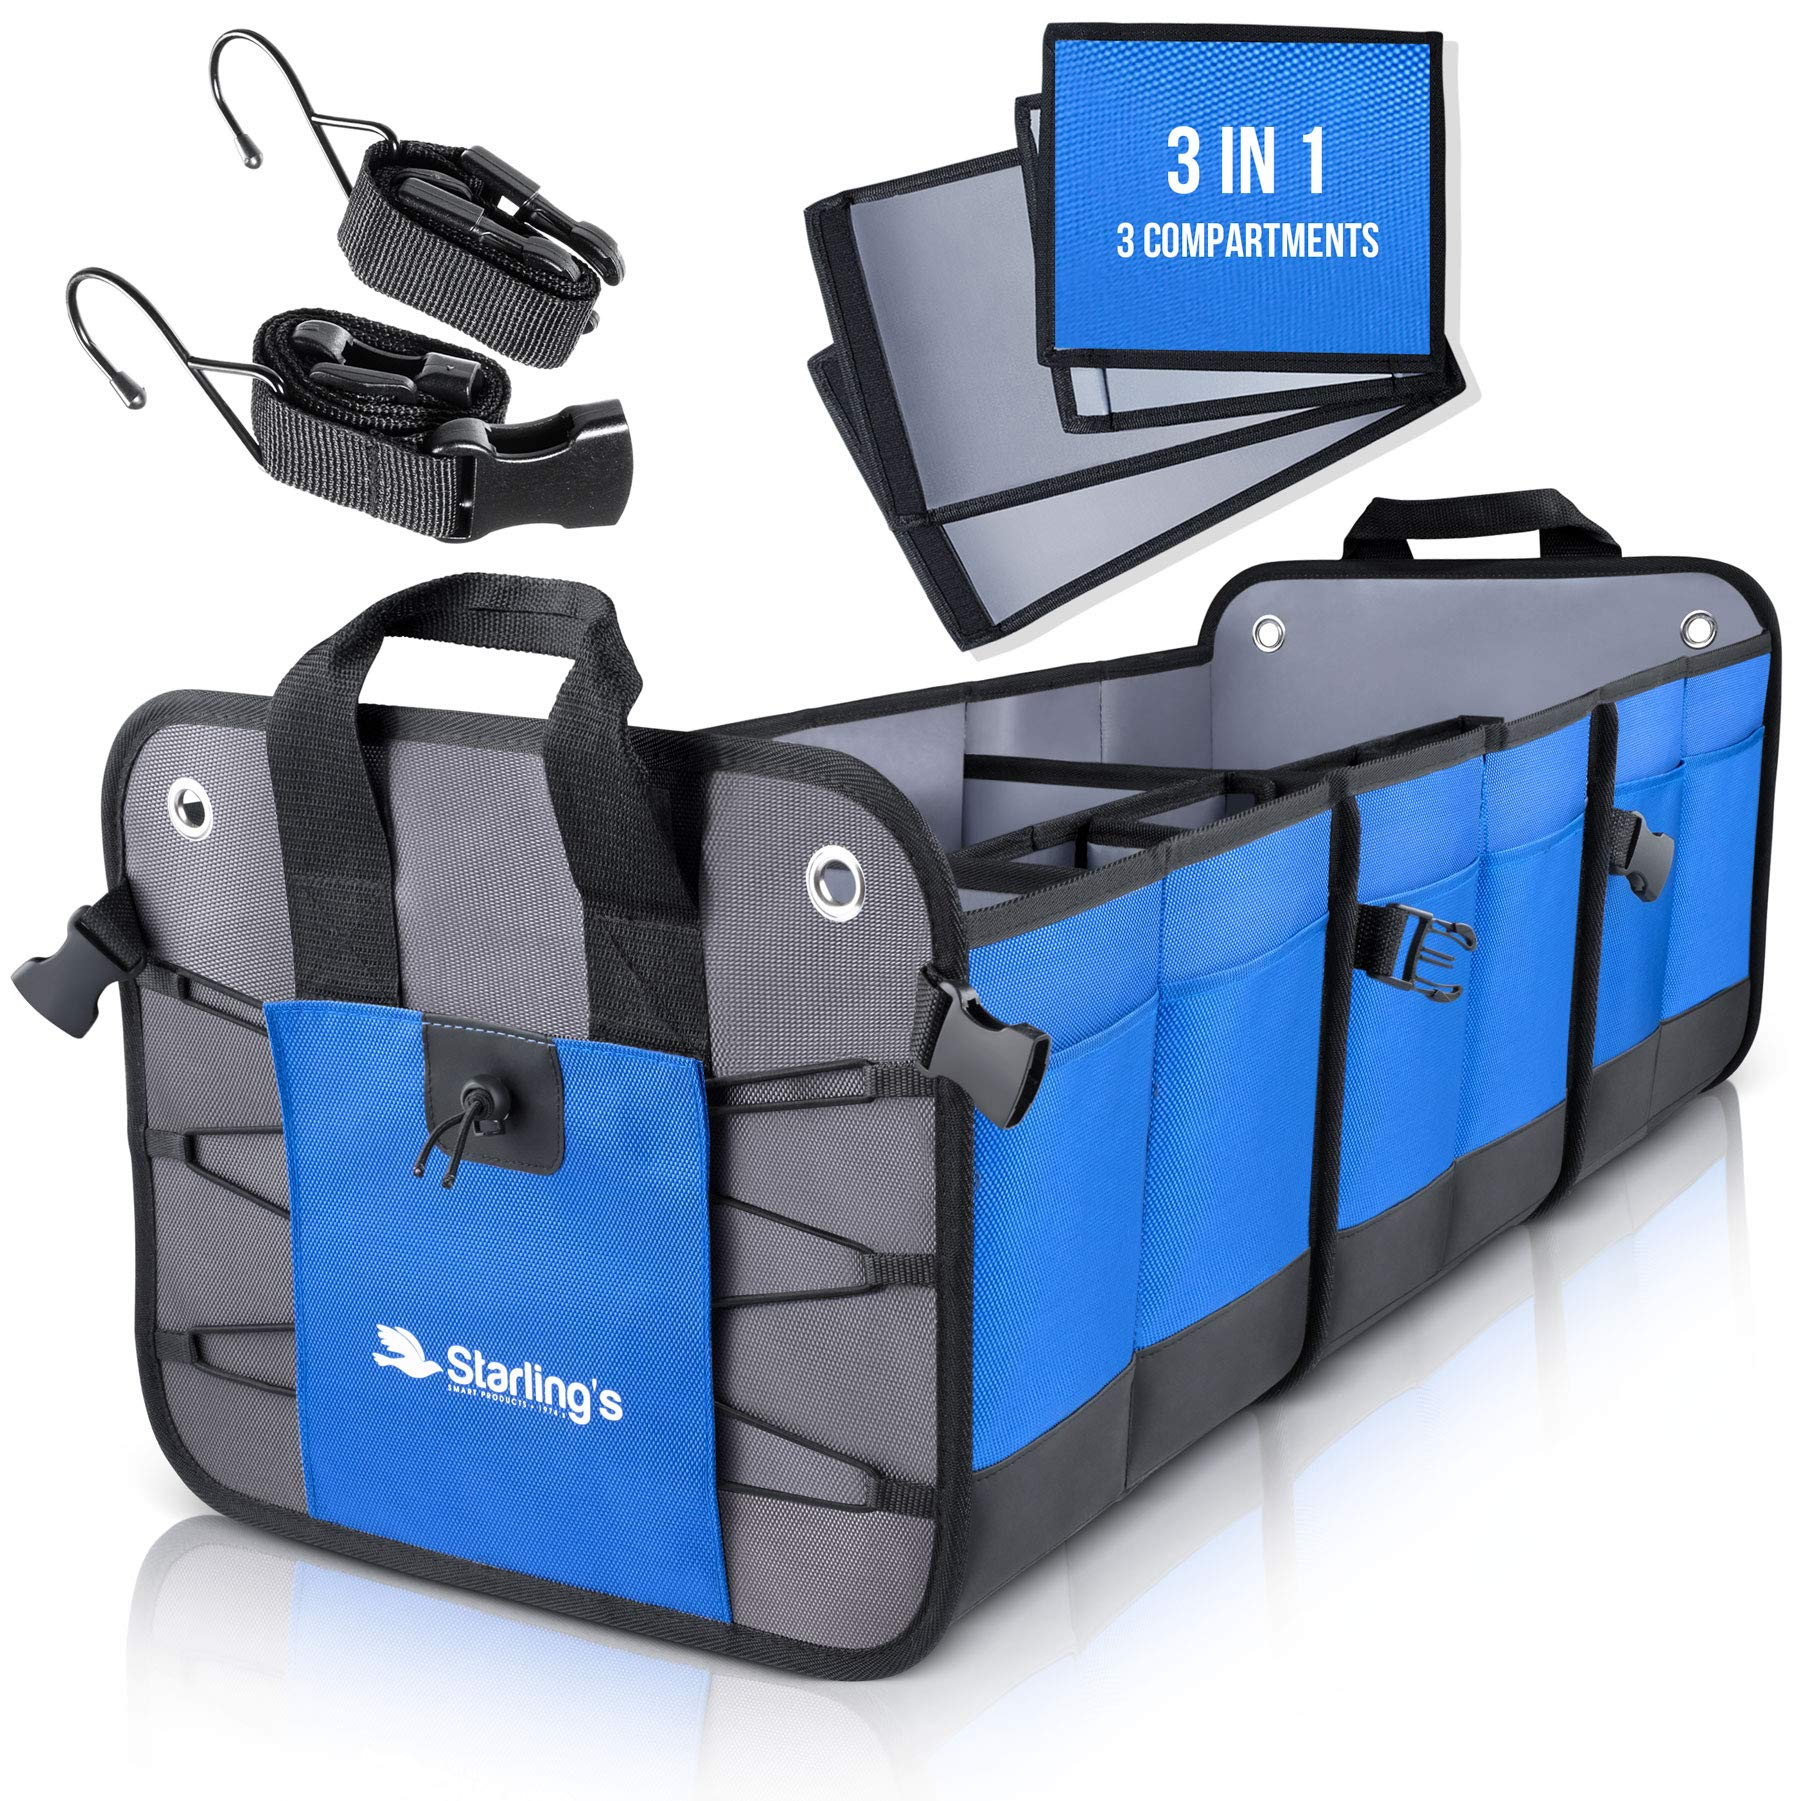 Starling's Car Trunk Organizer - Durable Storage SUV Cargo Organizer Adjustable (Blue, 3 Compartments) by Starling's